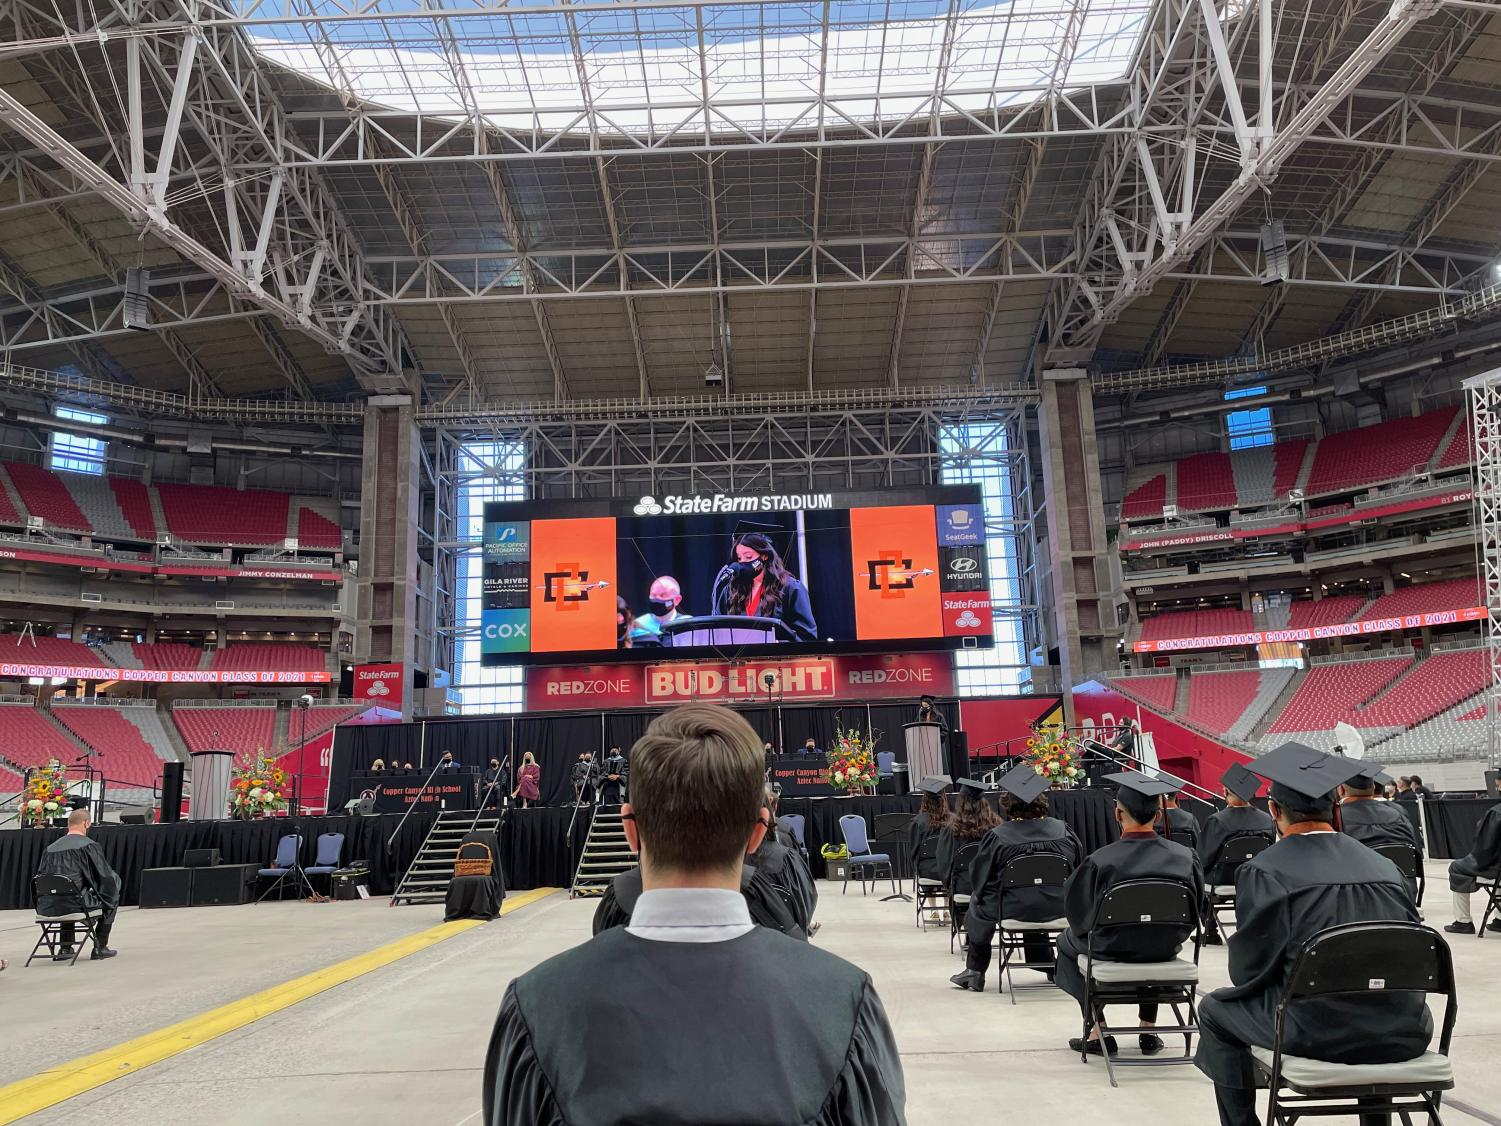 The CCHS class of 2021 graduated on May 24 at State Farm Stadium in Glendale.